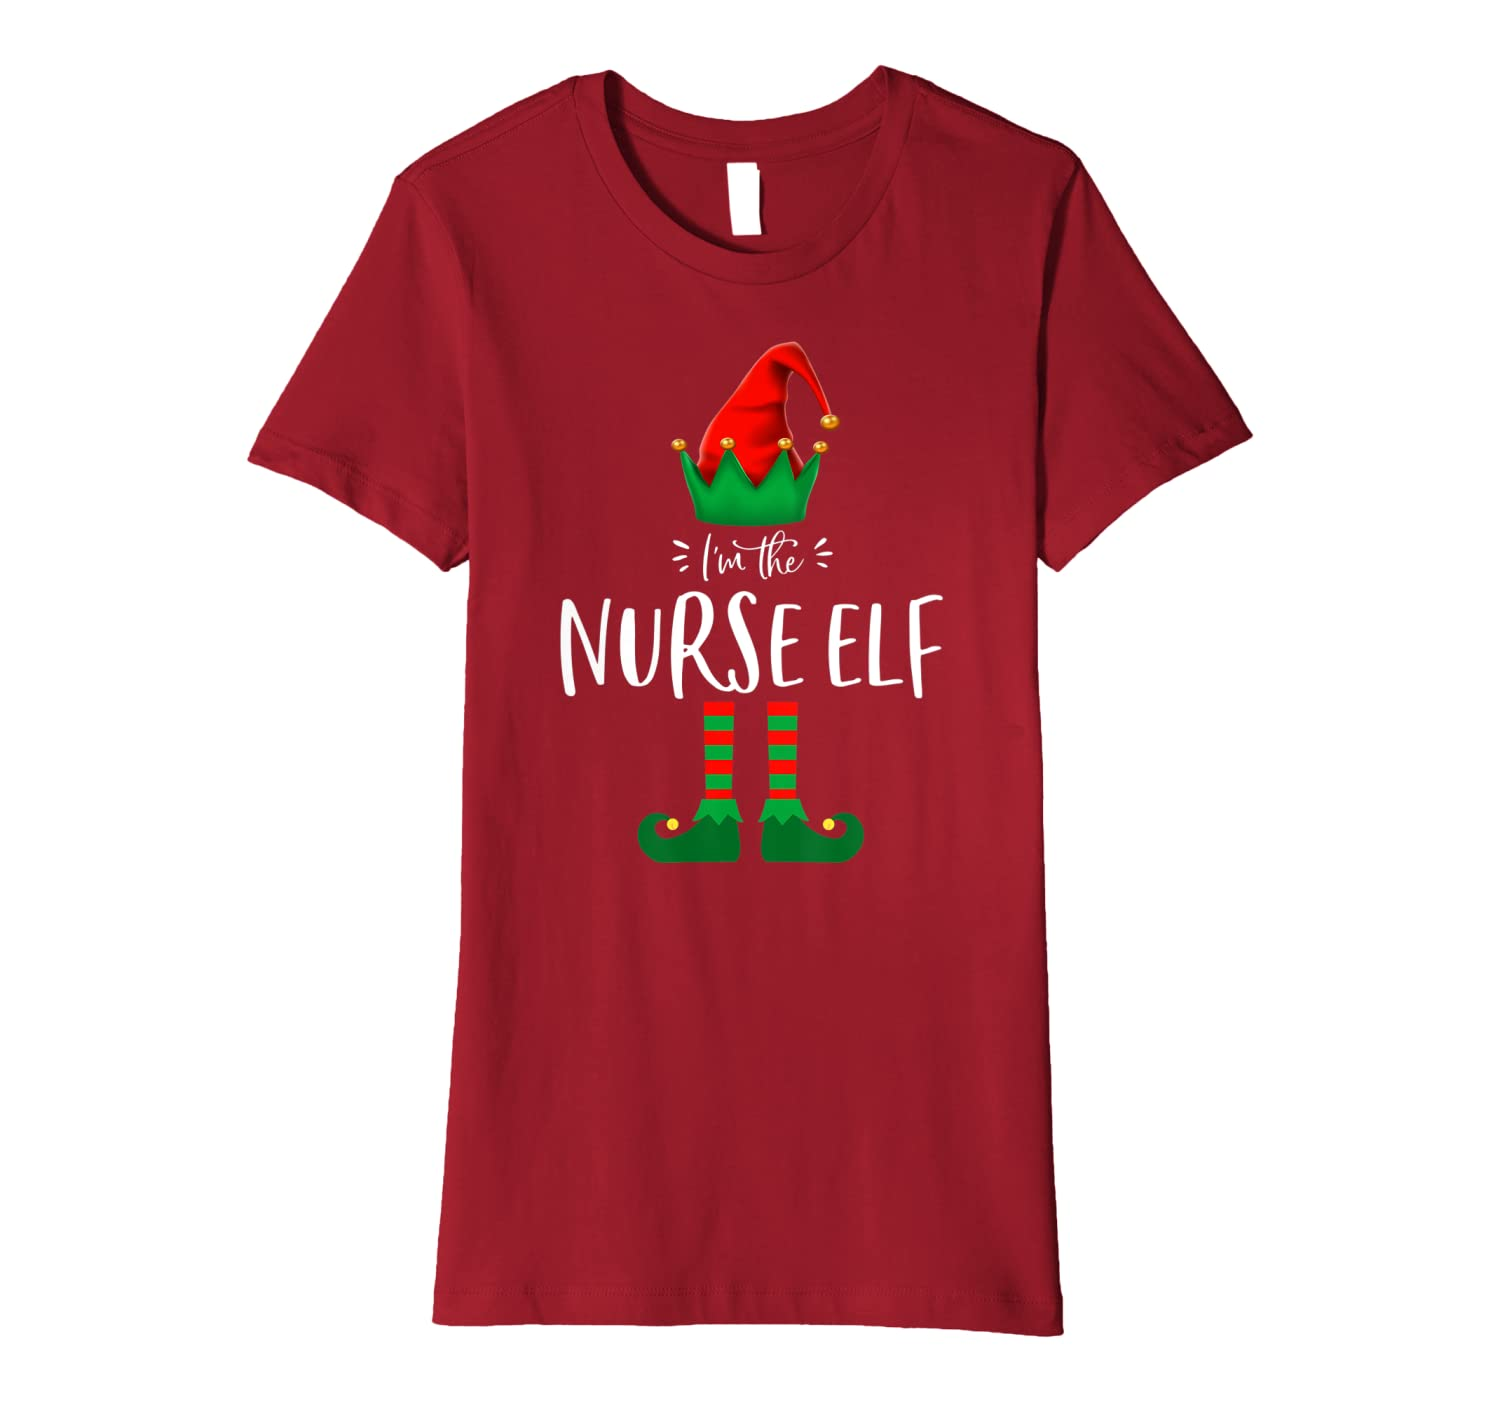 I'm The Nurse Elf Funny Matching Family Group Christmas Gift Premium T-Shirt